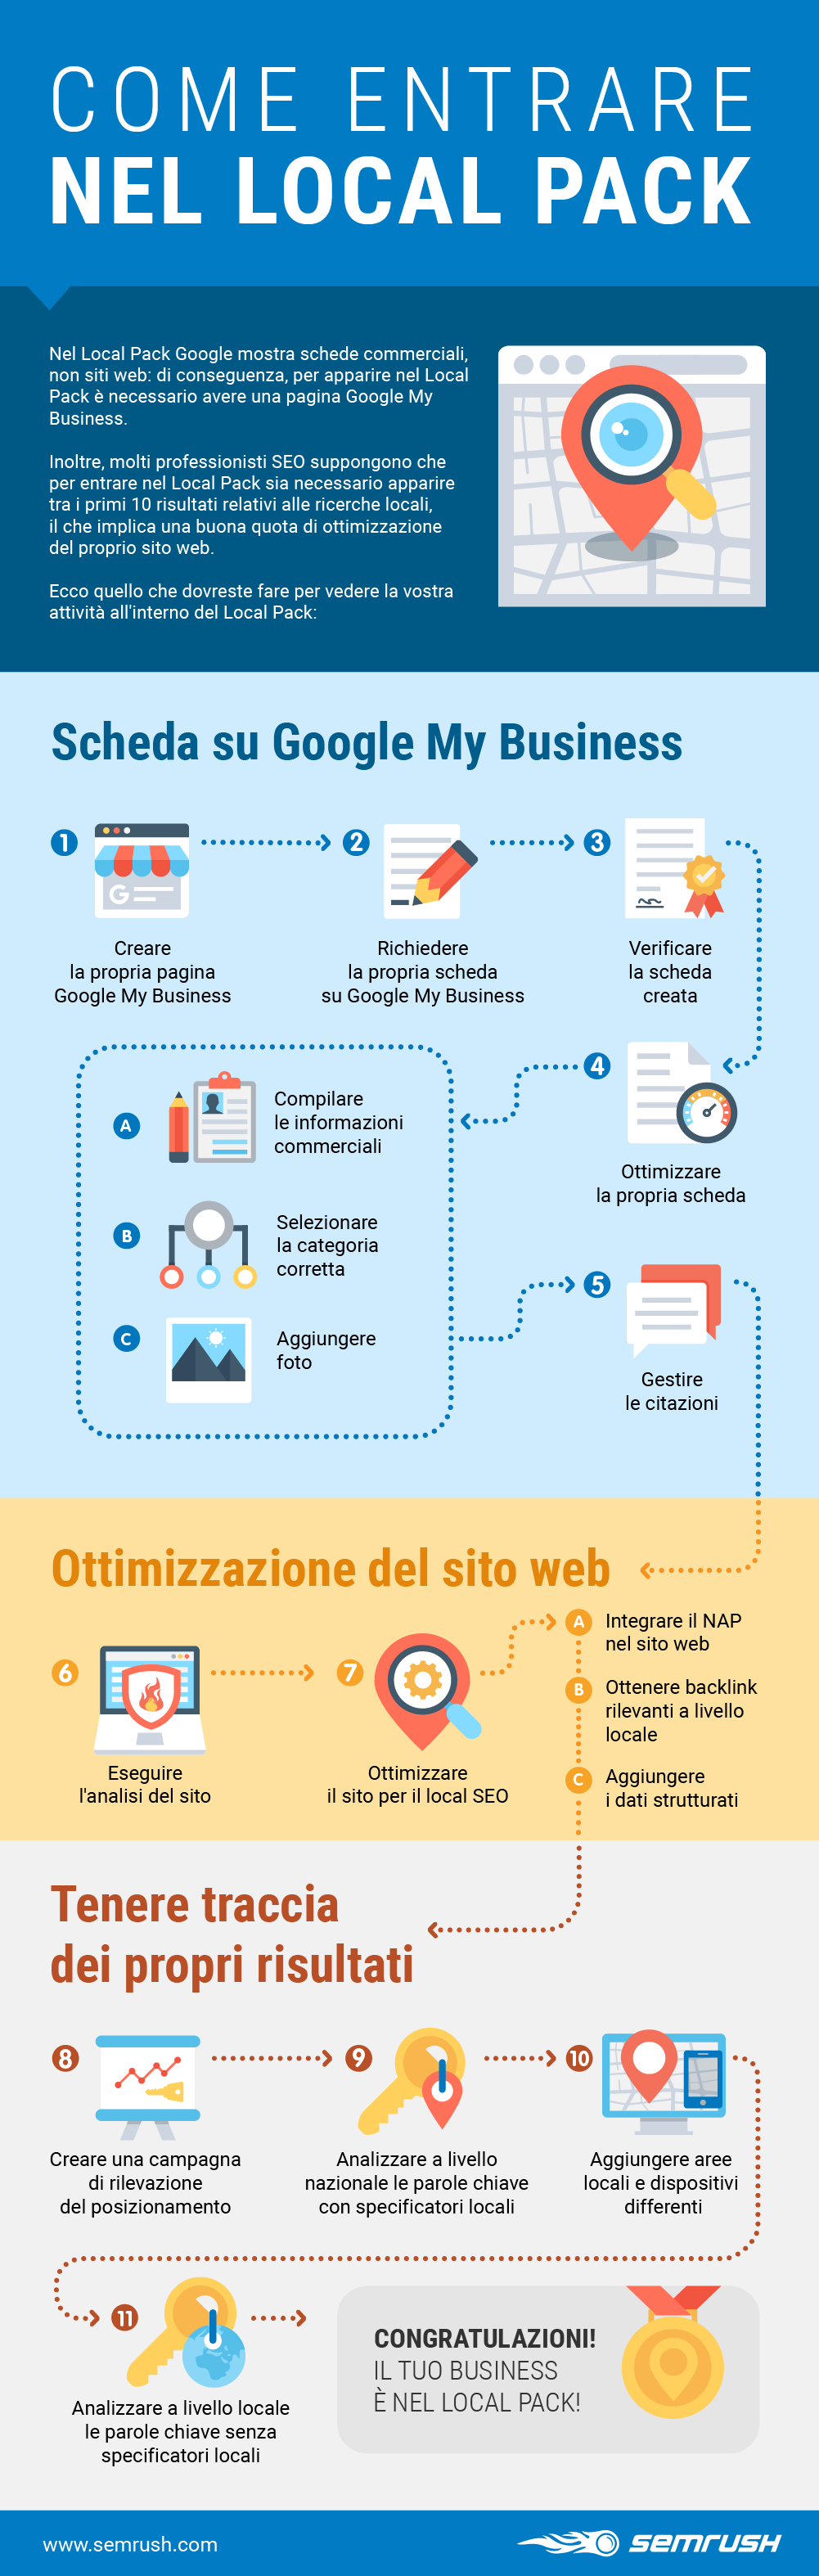 Come entrare nel Local pack: Infografica